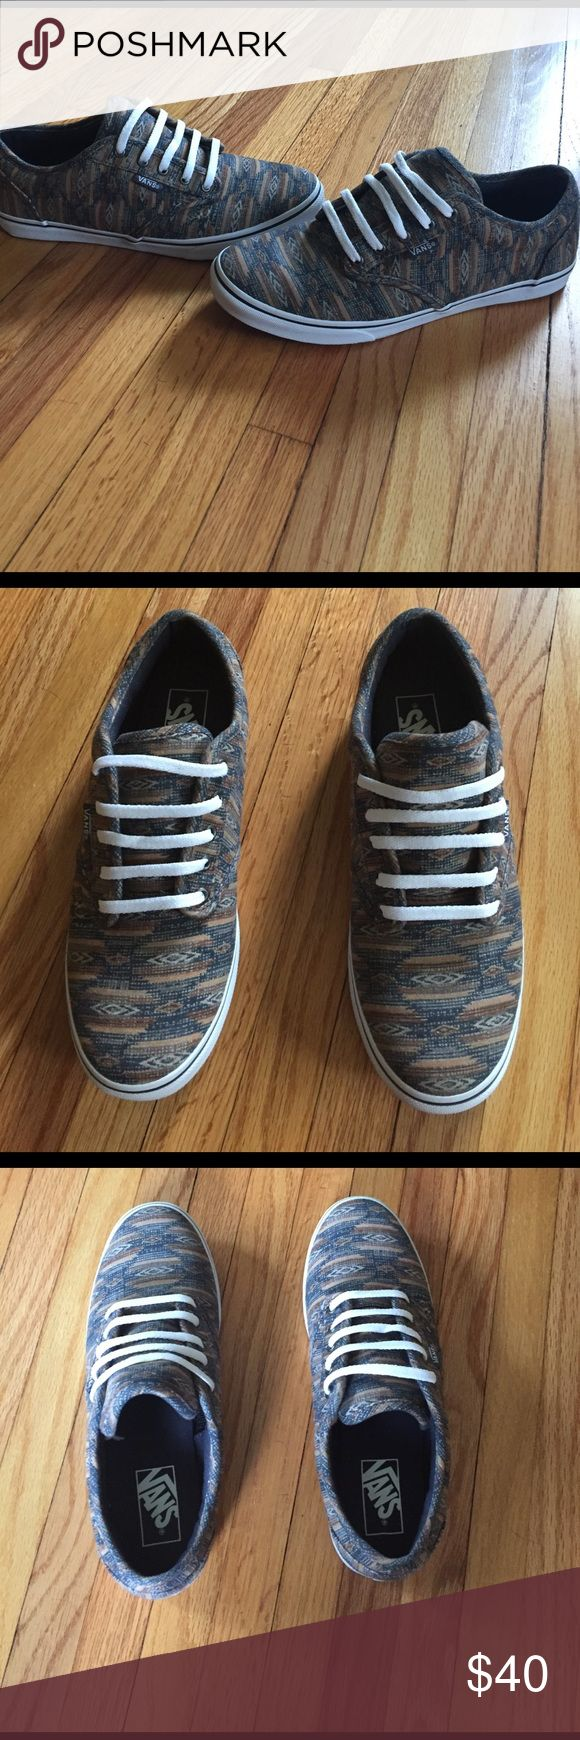 Women's Vans Sneakers. Size 7. Like new condition. These are new without tags. I've never worn these shoes outside of the house. I loved them in the store, but they just didn't match any of my outfits. They are tribal print. Vans Shoes Sneakers